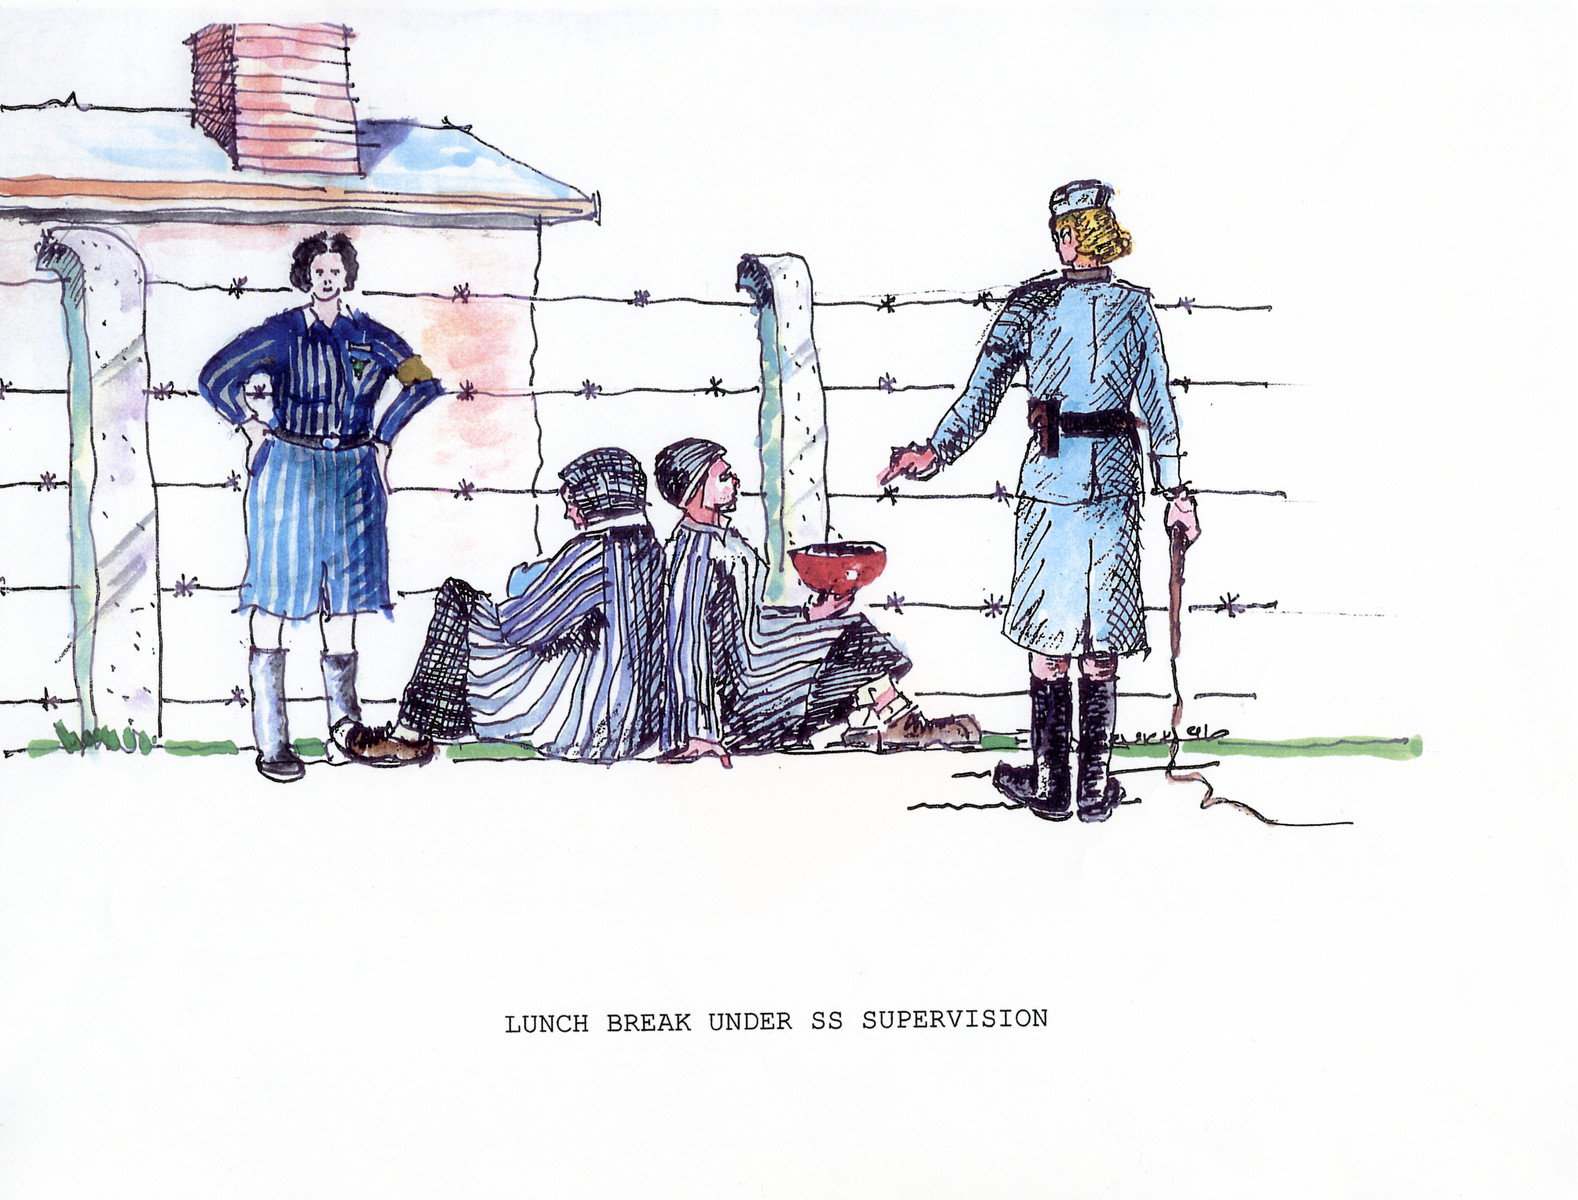 """A watercolor and ink drawing from the pictorial memoire entitled,  """"Images from Auschwitz-Birkenau, by John Wiernicki, Polish Resistance Fighter, Prisoner Number P150302.""""  The caption reads, """"Lunch break under SS Supervision."""""""